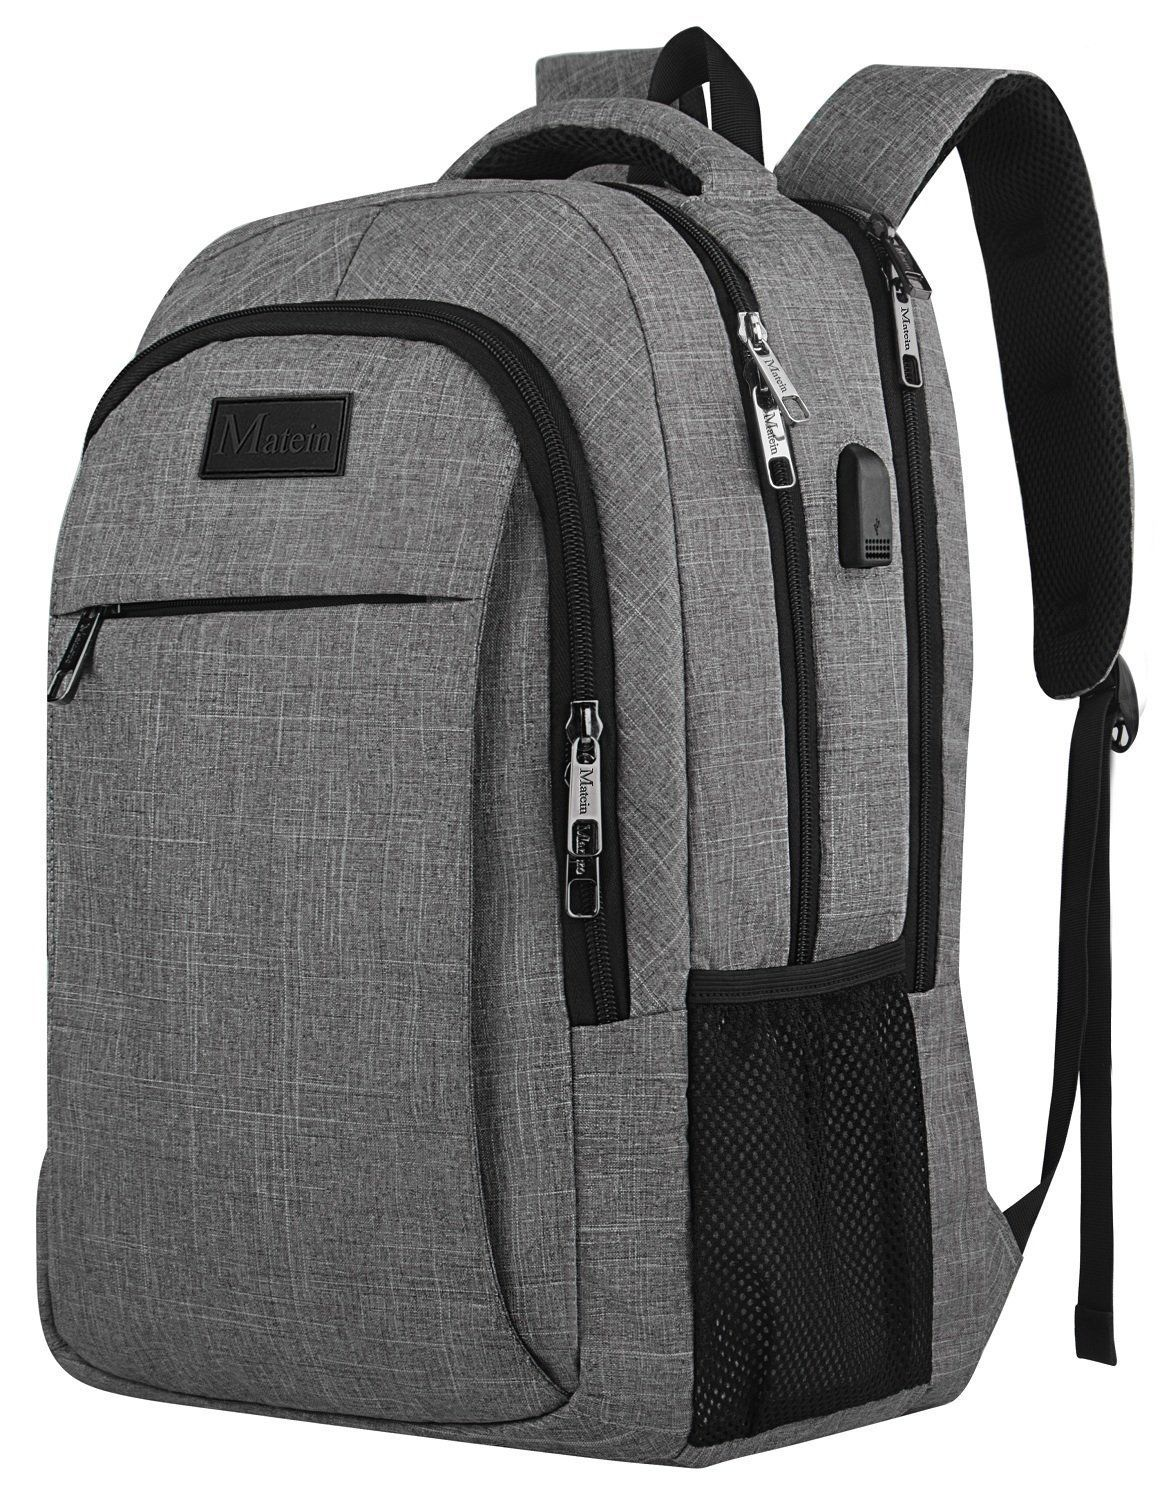 18863b7a6722 Top 10 Best Laptop Backpack Reviews In 2018